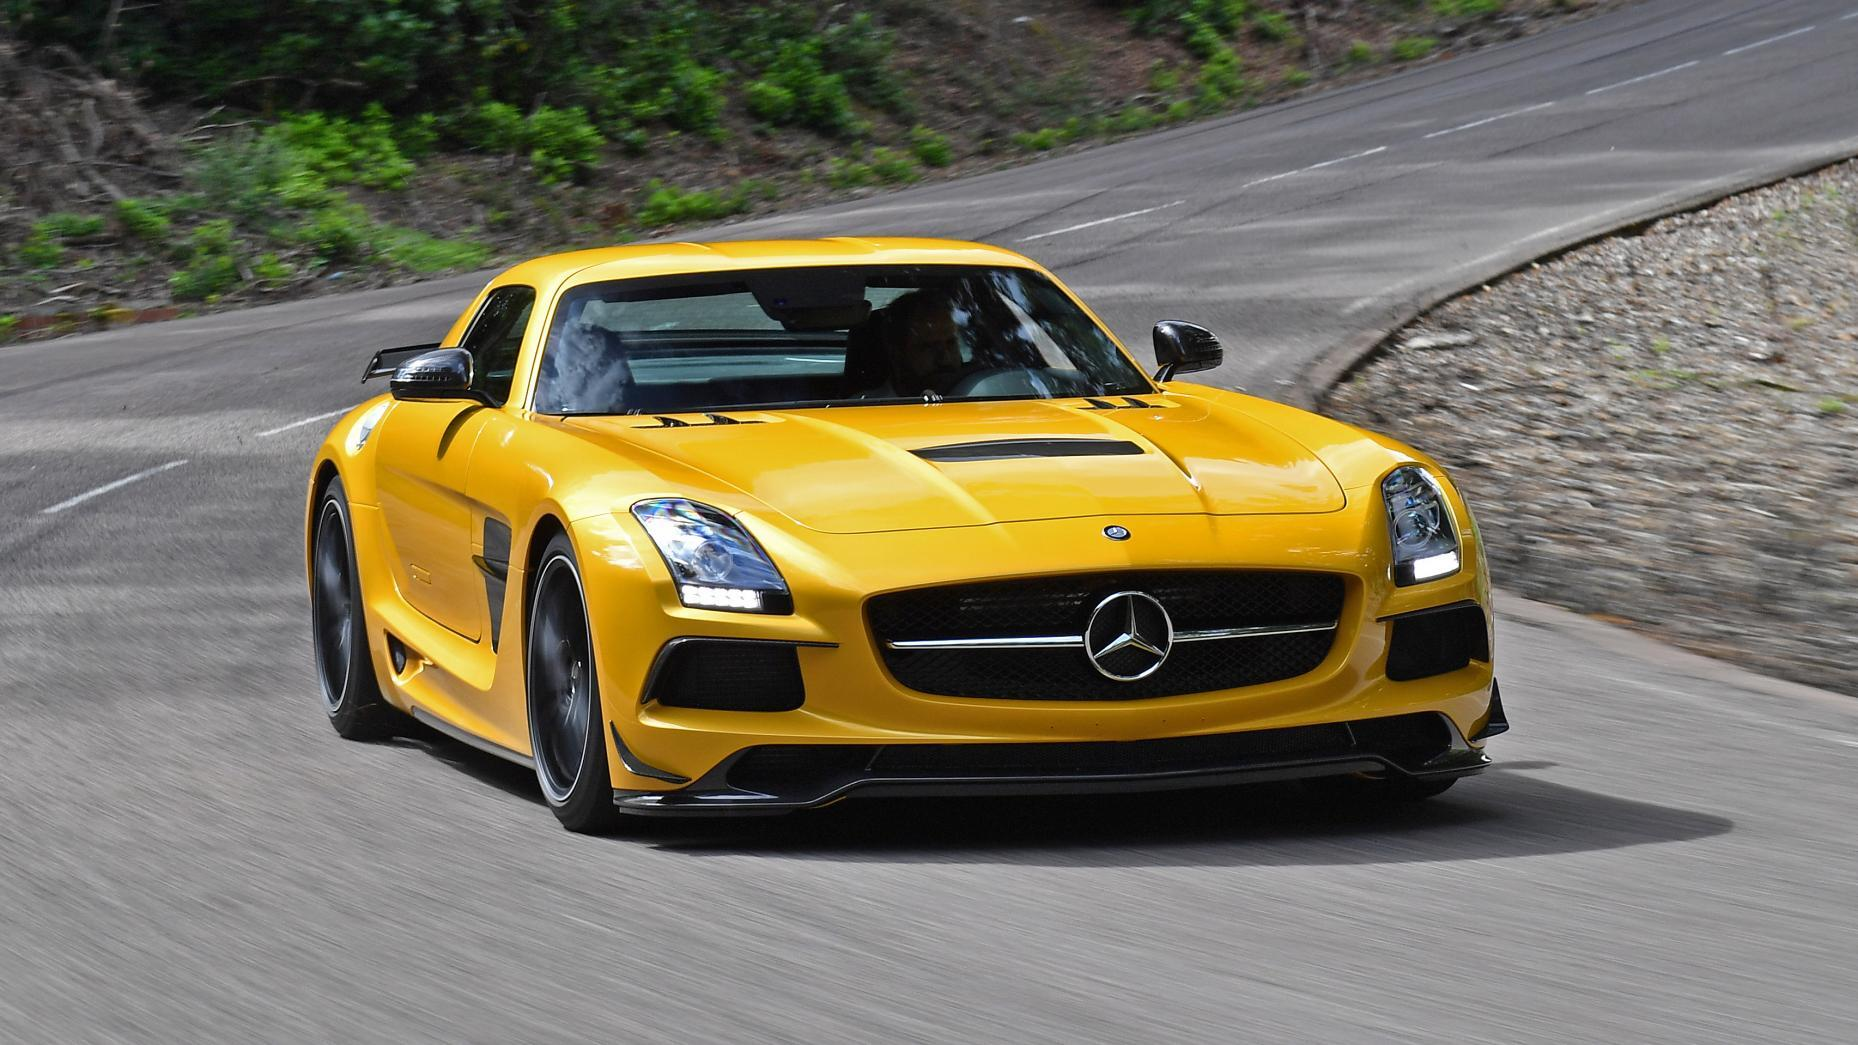 Driving Mercedes-AMG's wildest supercars